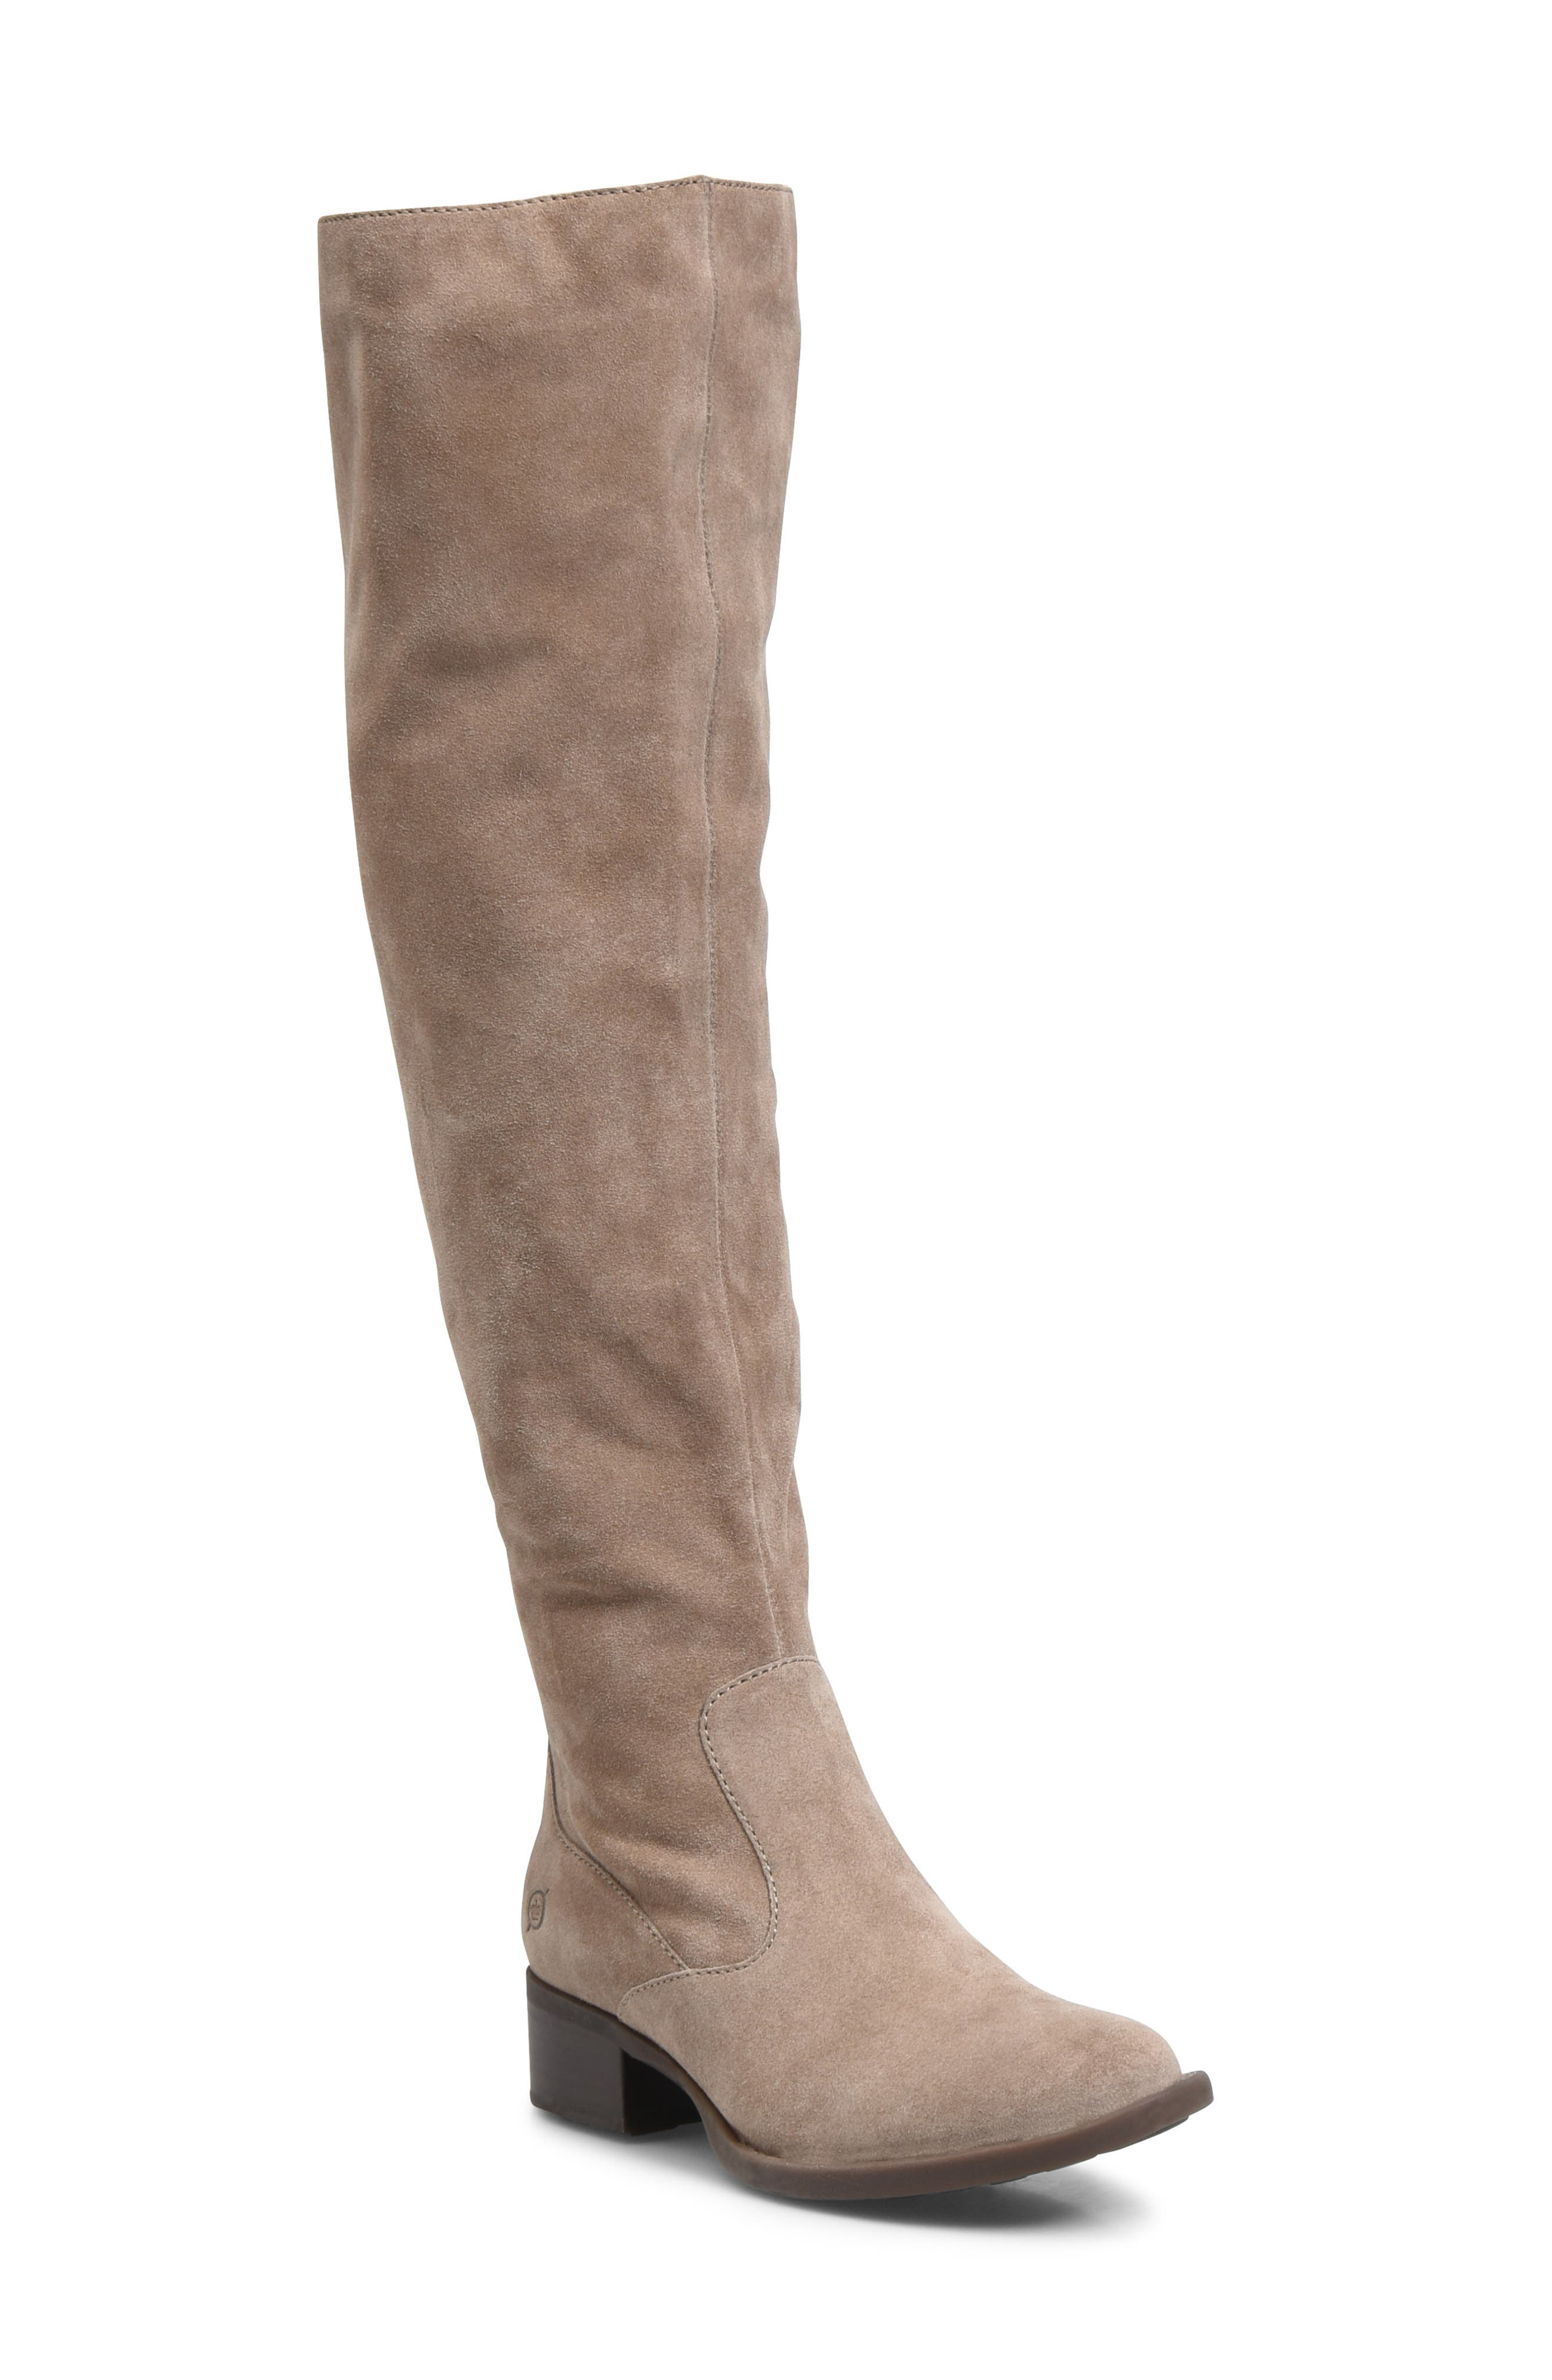 Cricket Over the Knee Boot,                             Main thumbnail 1, color,                             TAUPE SUEDE